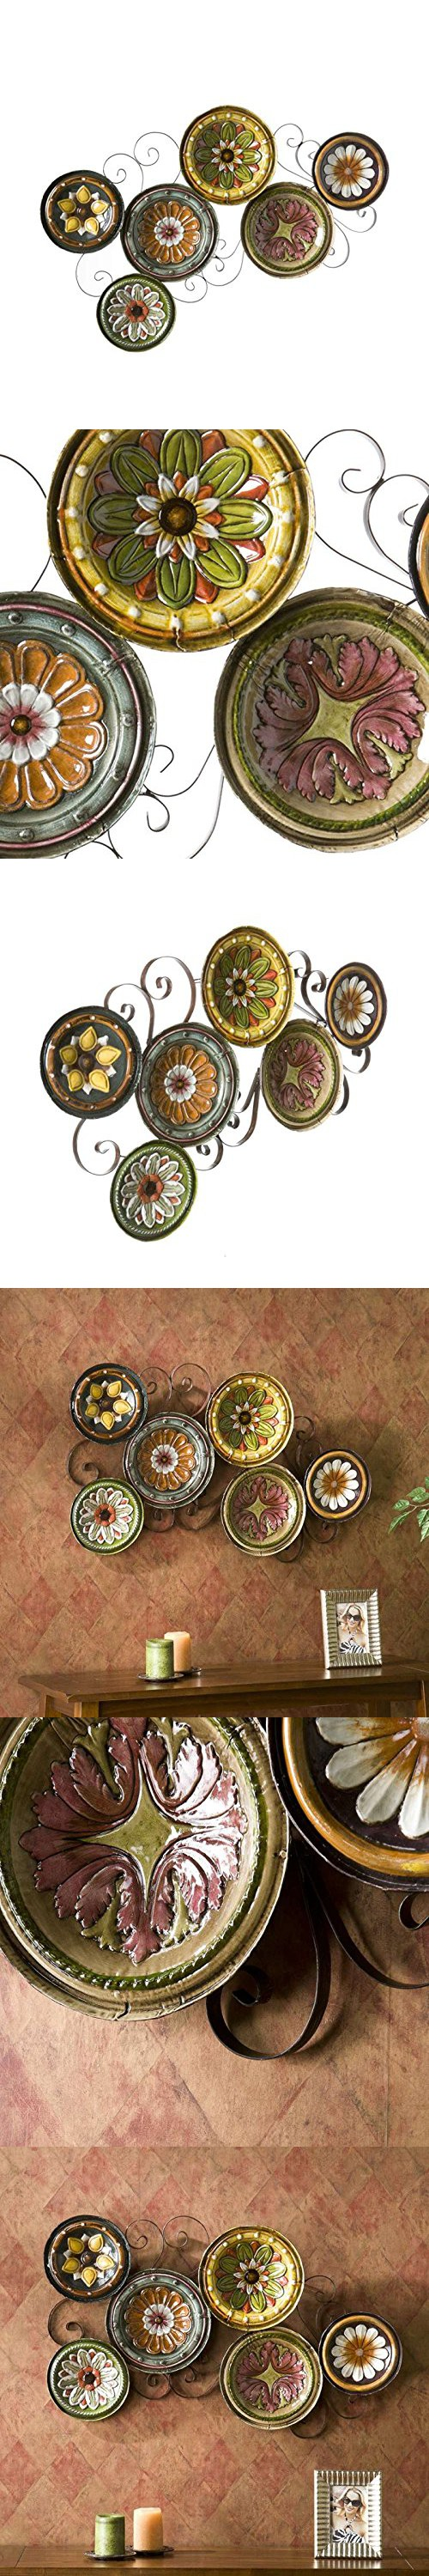 Scattered italian plates wall art kitchen tuscan metal hand